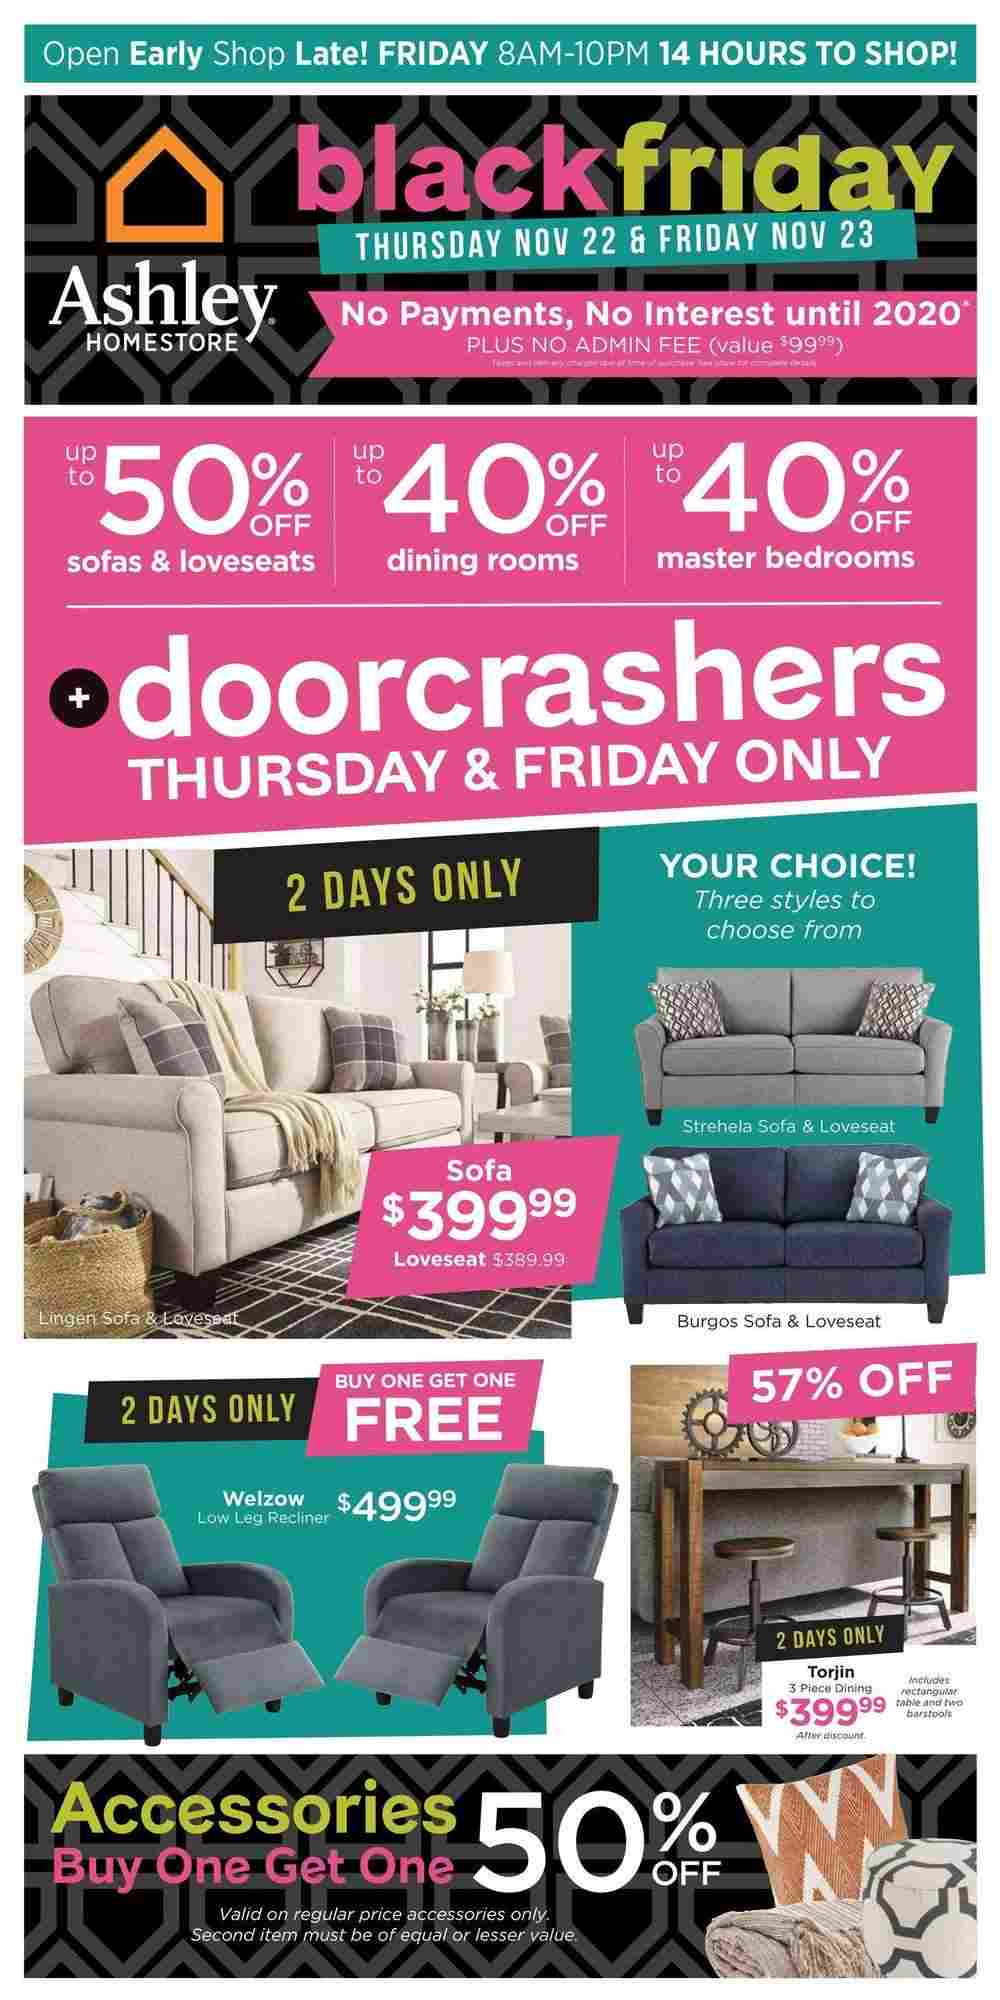 Ashley Furniture Homestore Flyer (ON) Black Friday Sale November